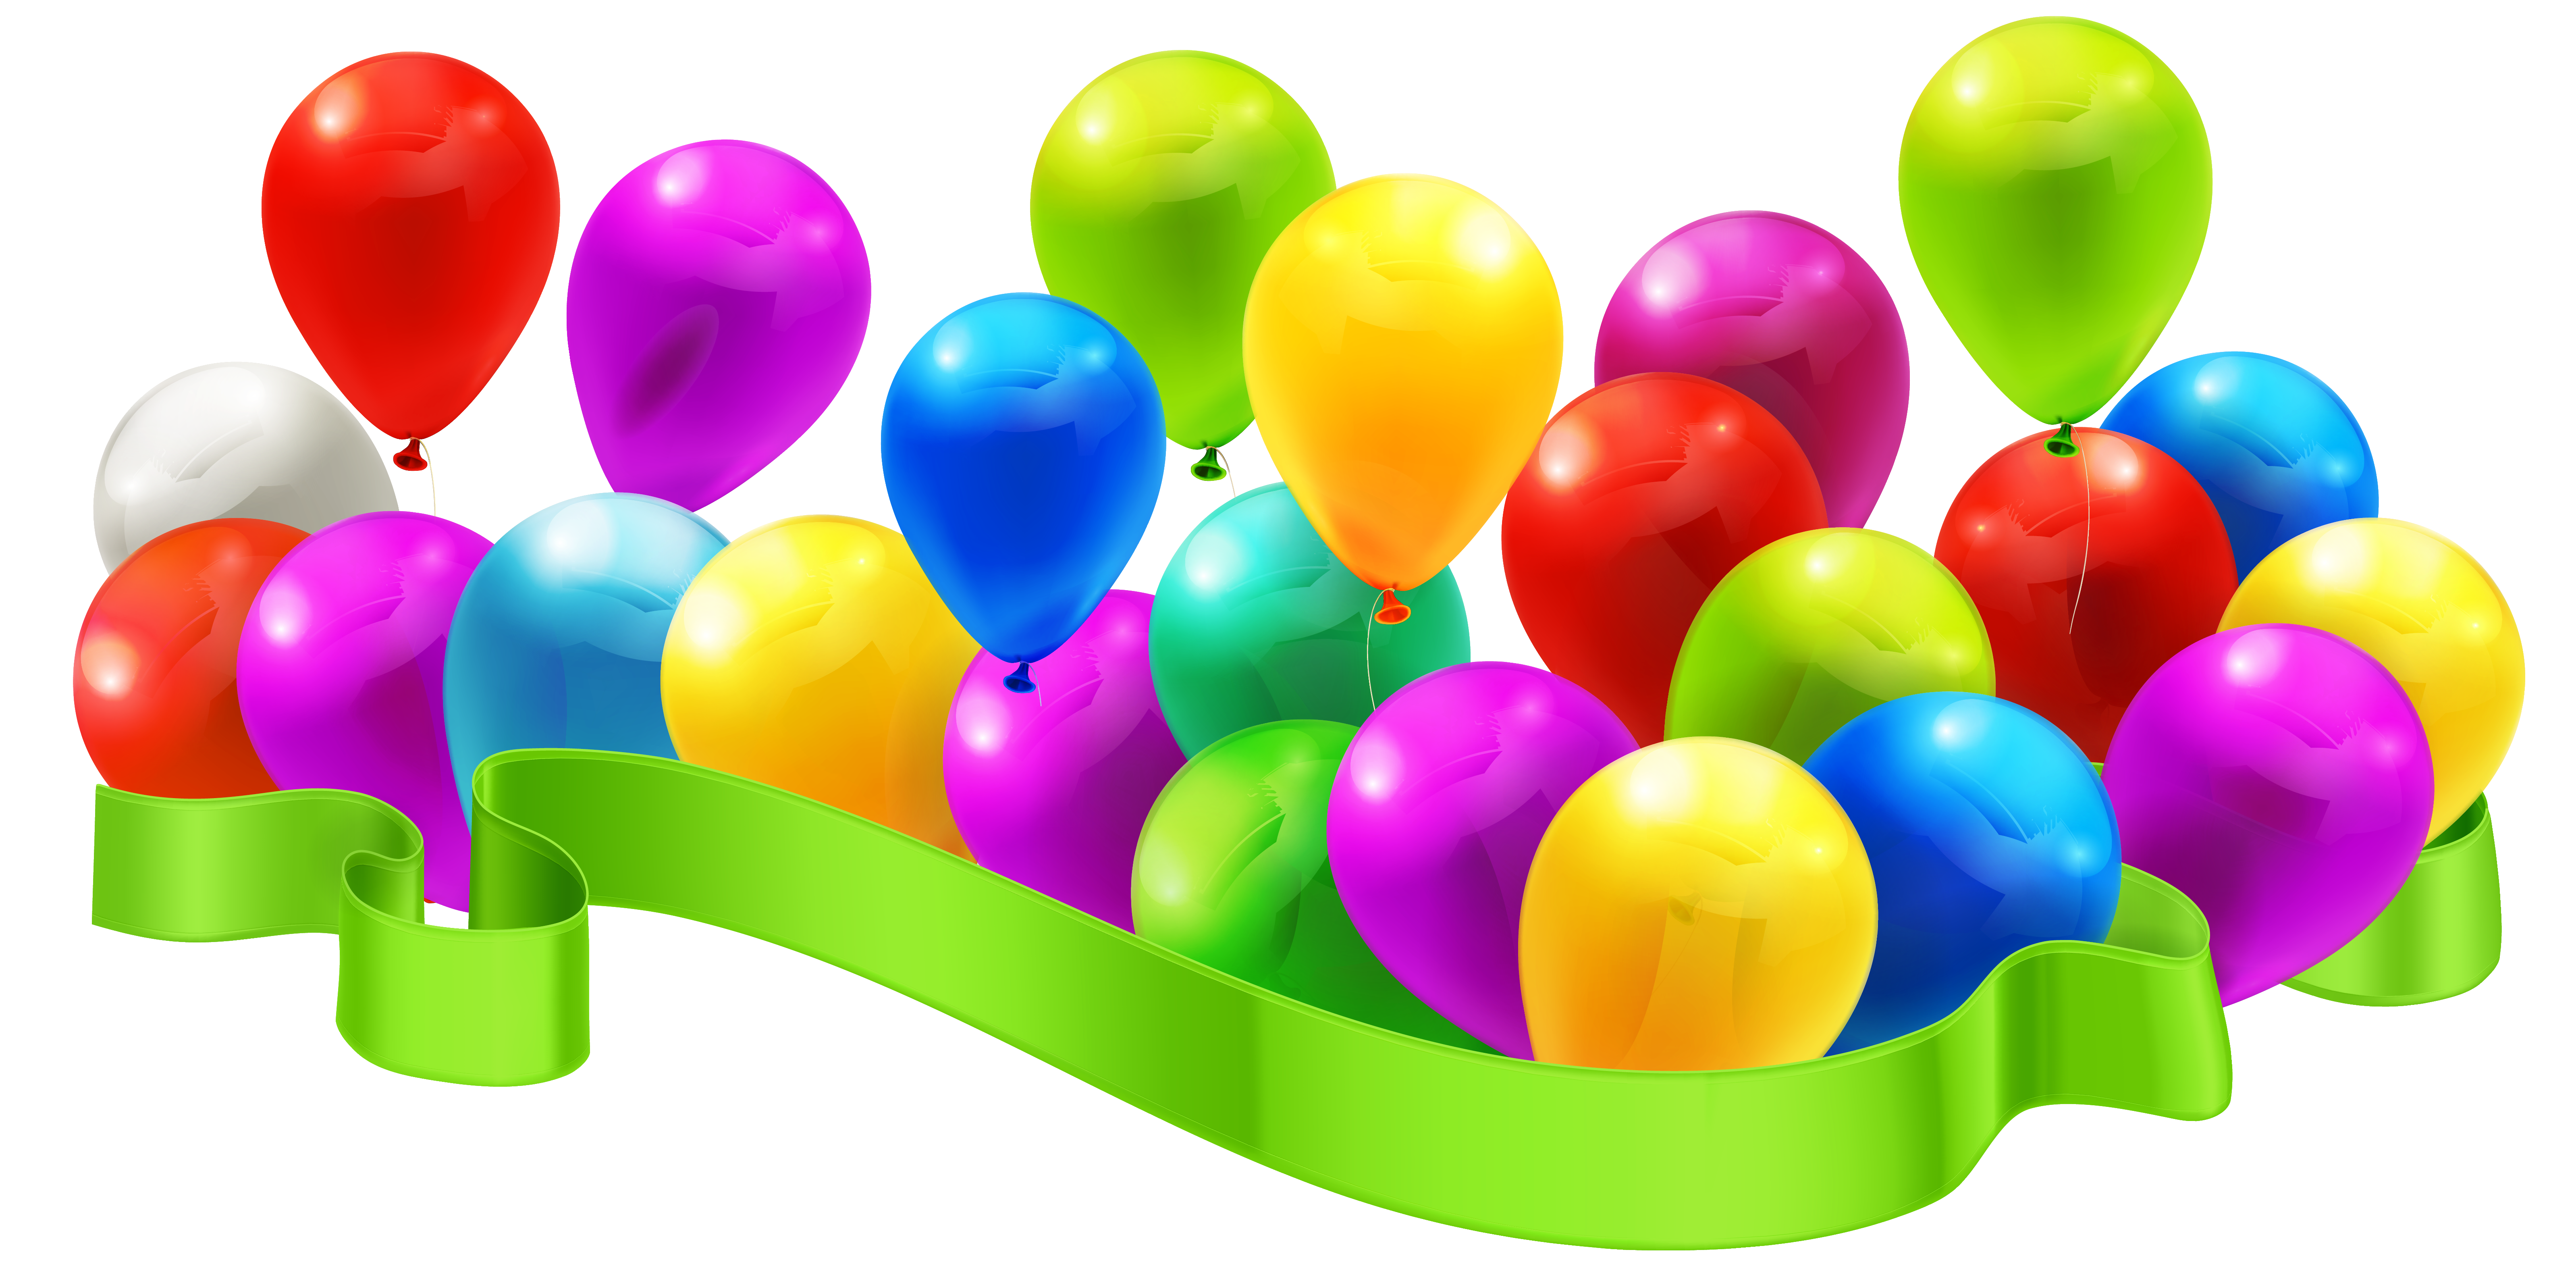 Balloon decoration png image. Congratulations clipart manager